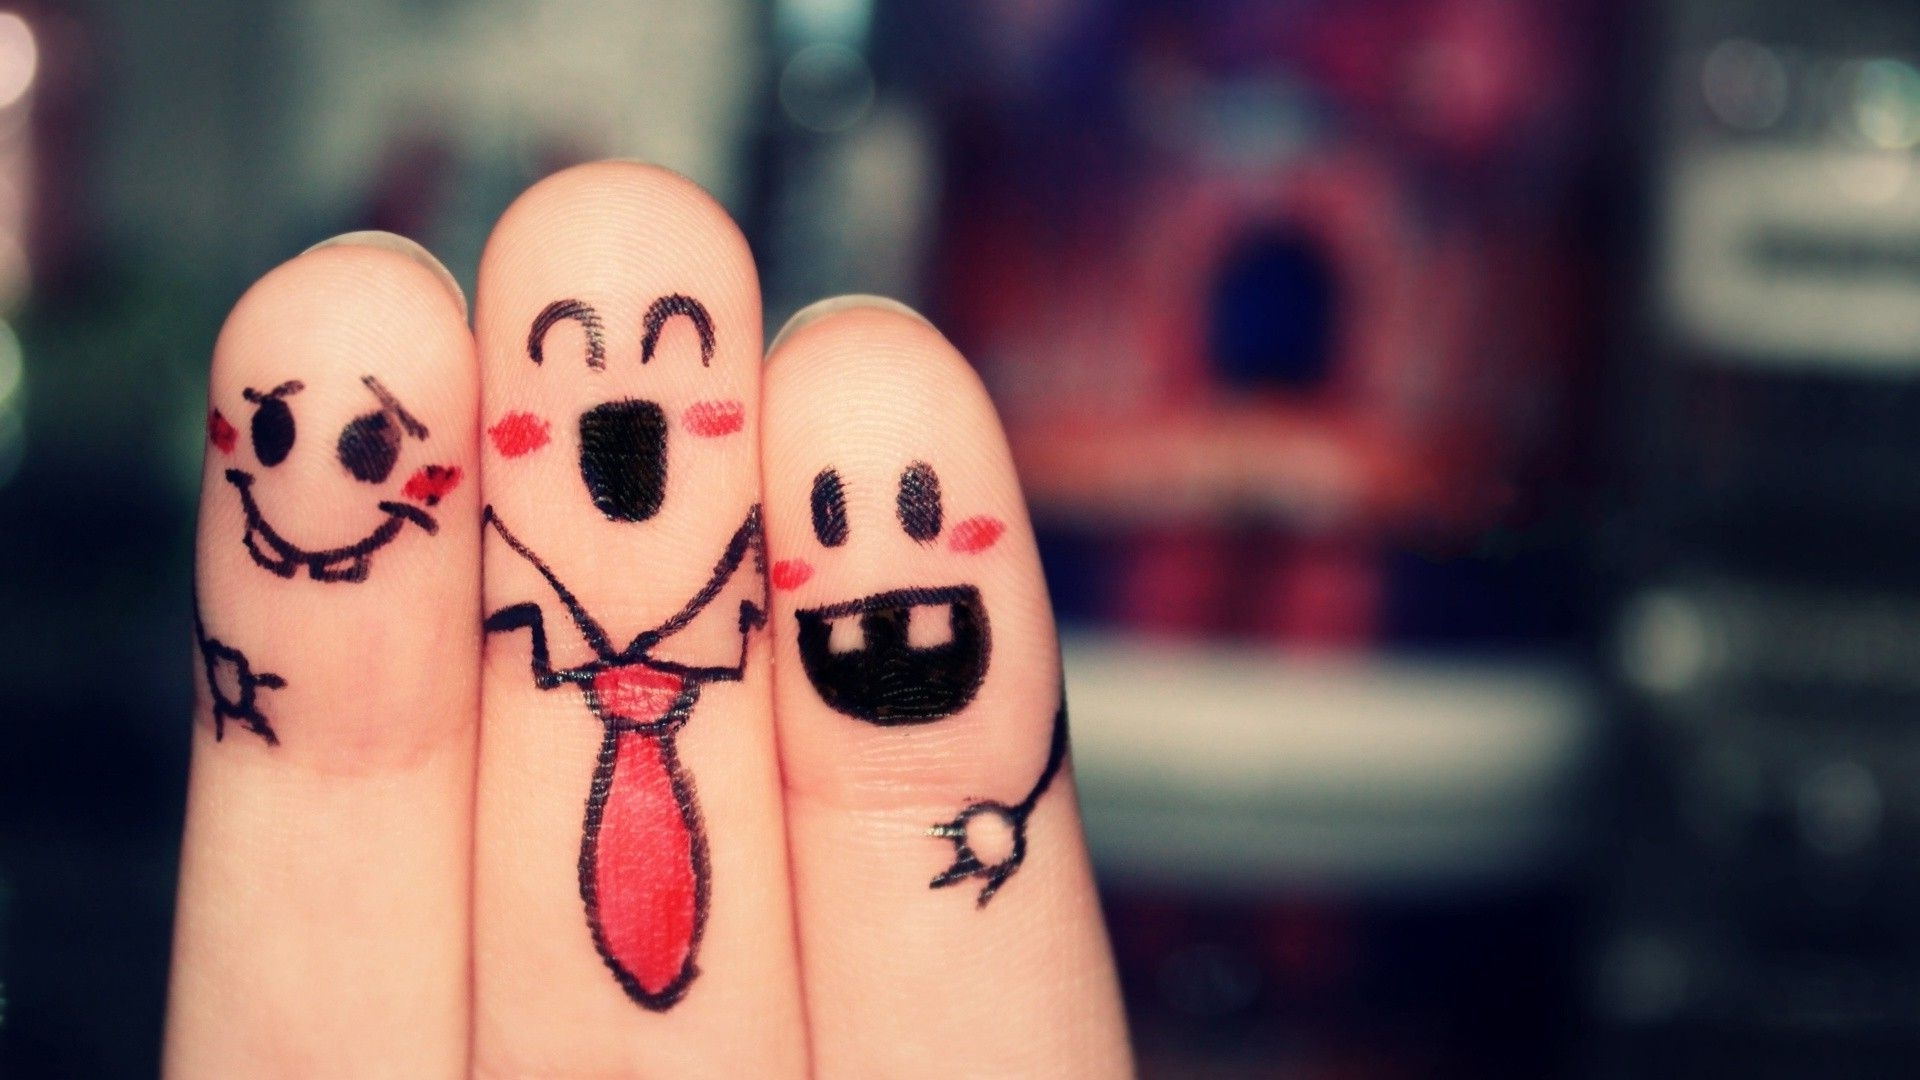 Cute Friendship Quotes Hd Wallpapers Best Friends Wallpapers 34 Wallpapers Adorable Wallpapers